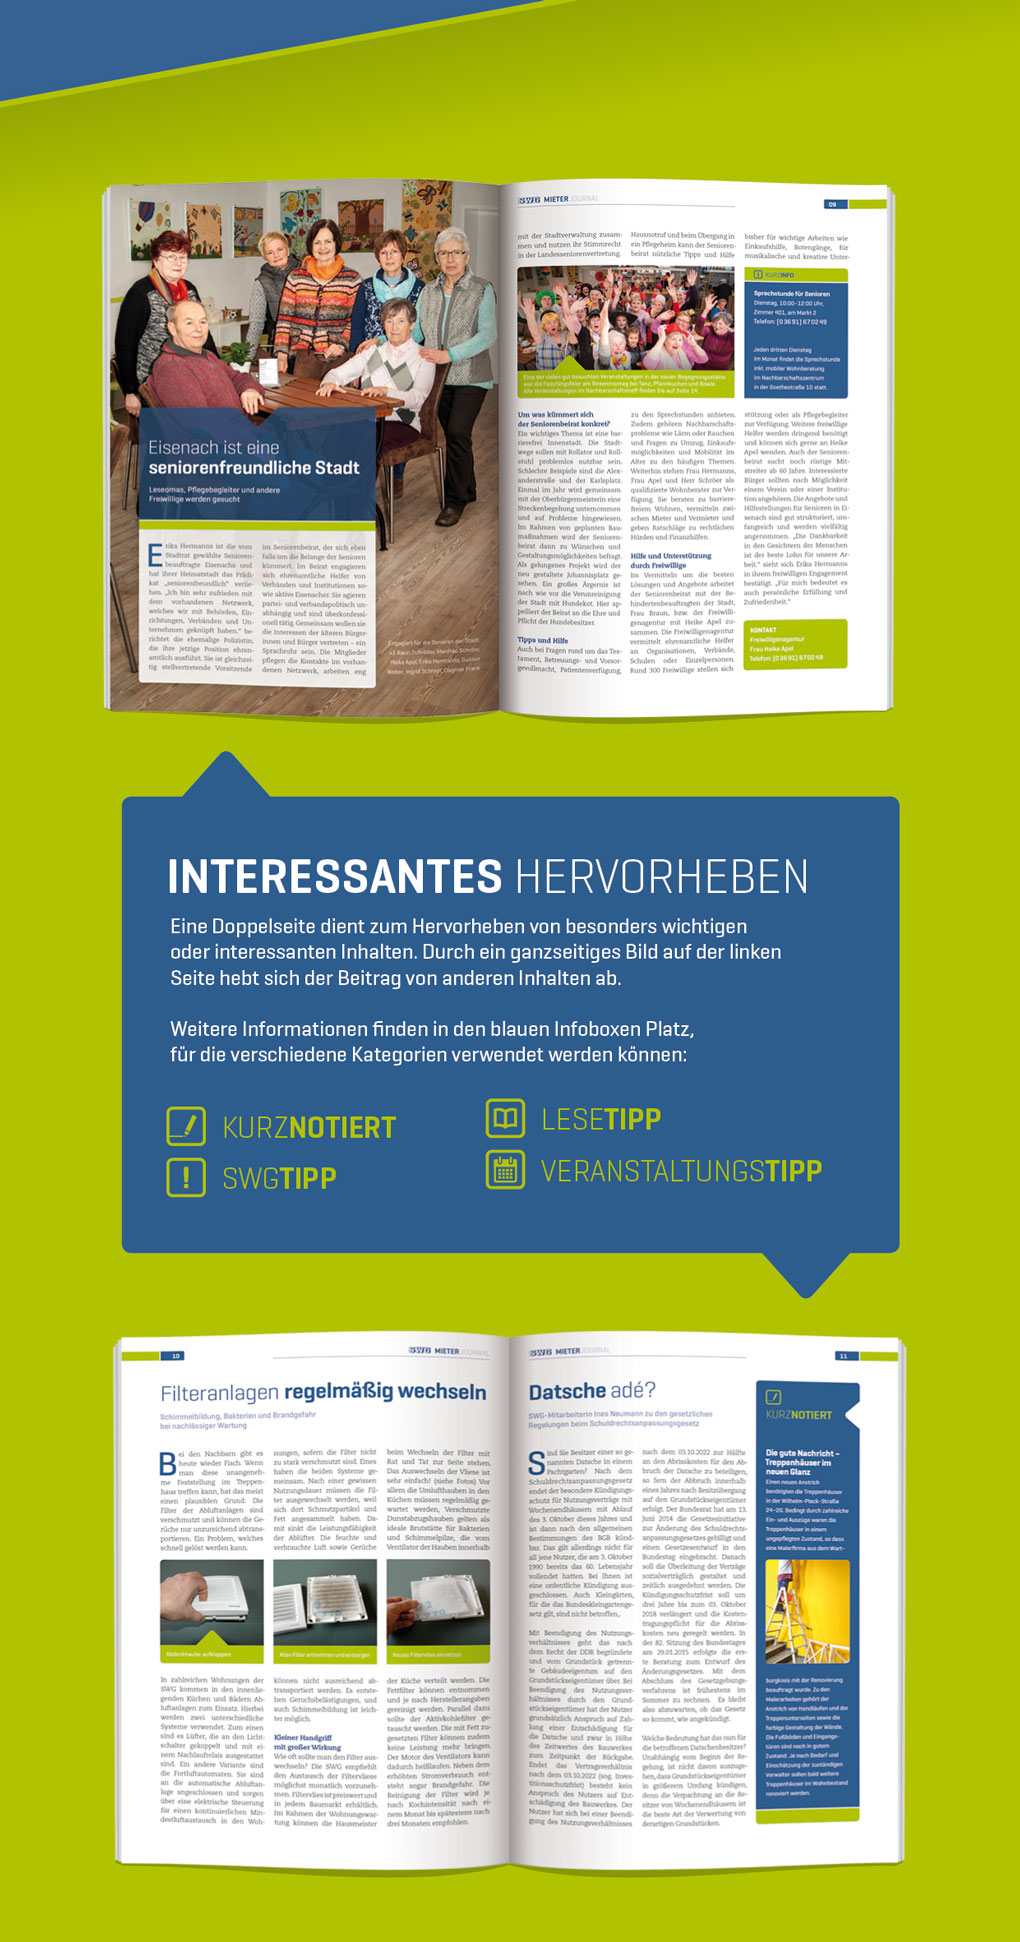 mieter-journal-infoboxen